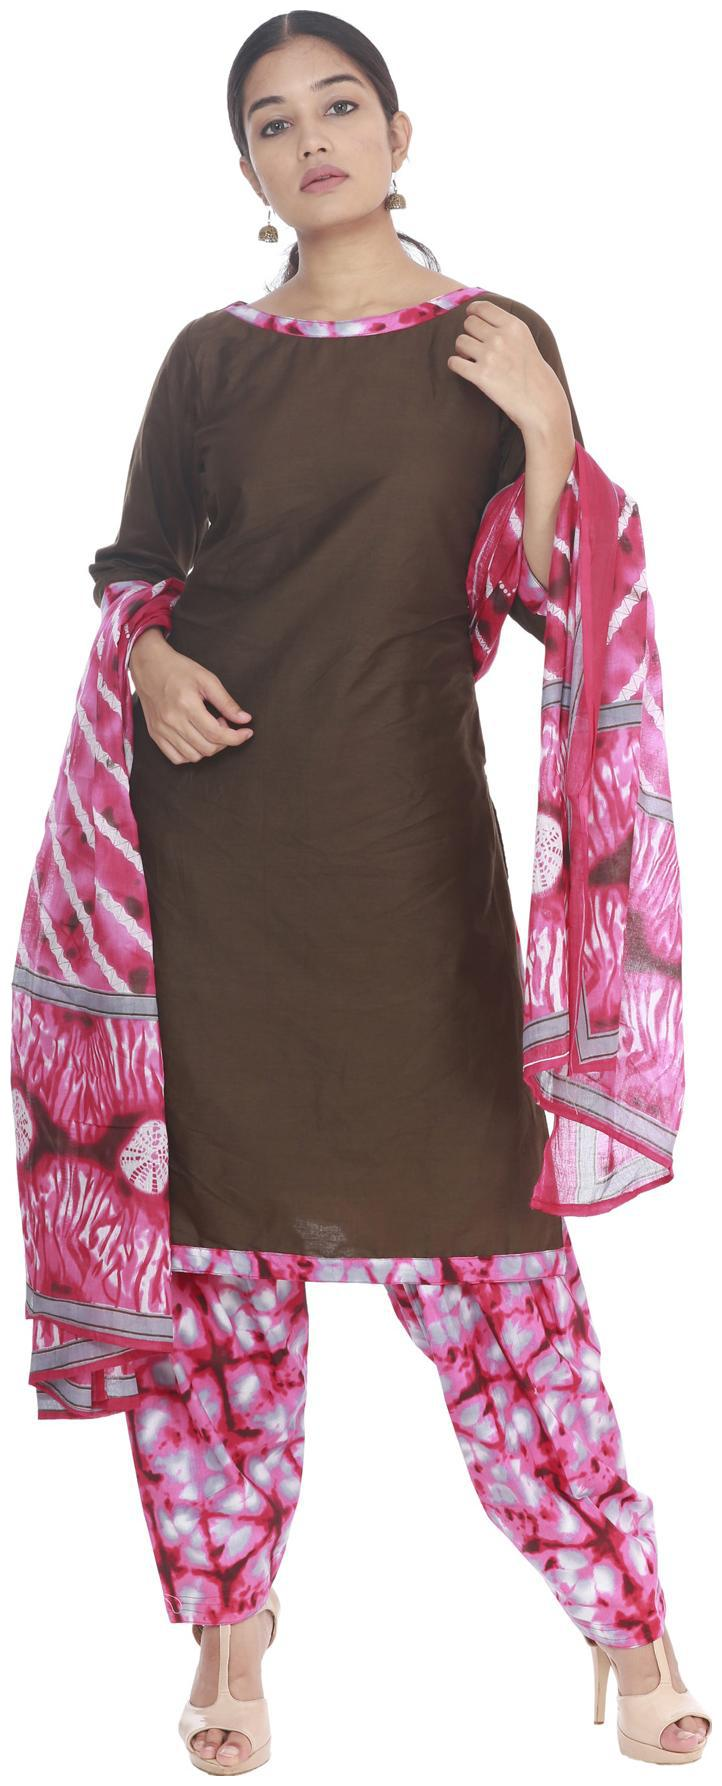 https://assetscdn1.paytm.com/images/catalog/product/A/AP/APPSOUTH-INDIA-SOUT1014148A89244F7/1562962931483_0..jpg